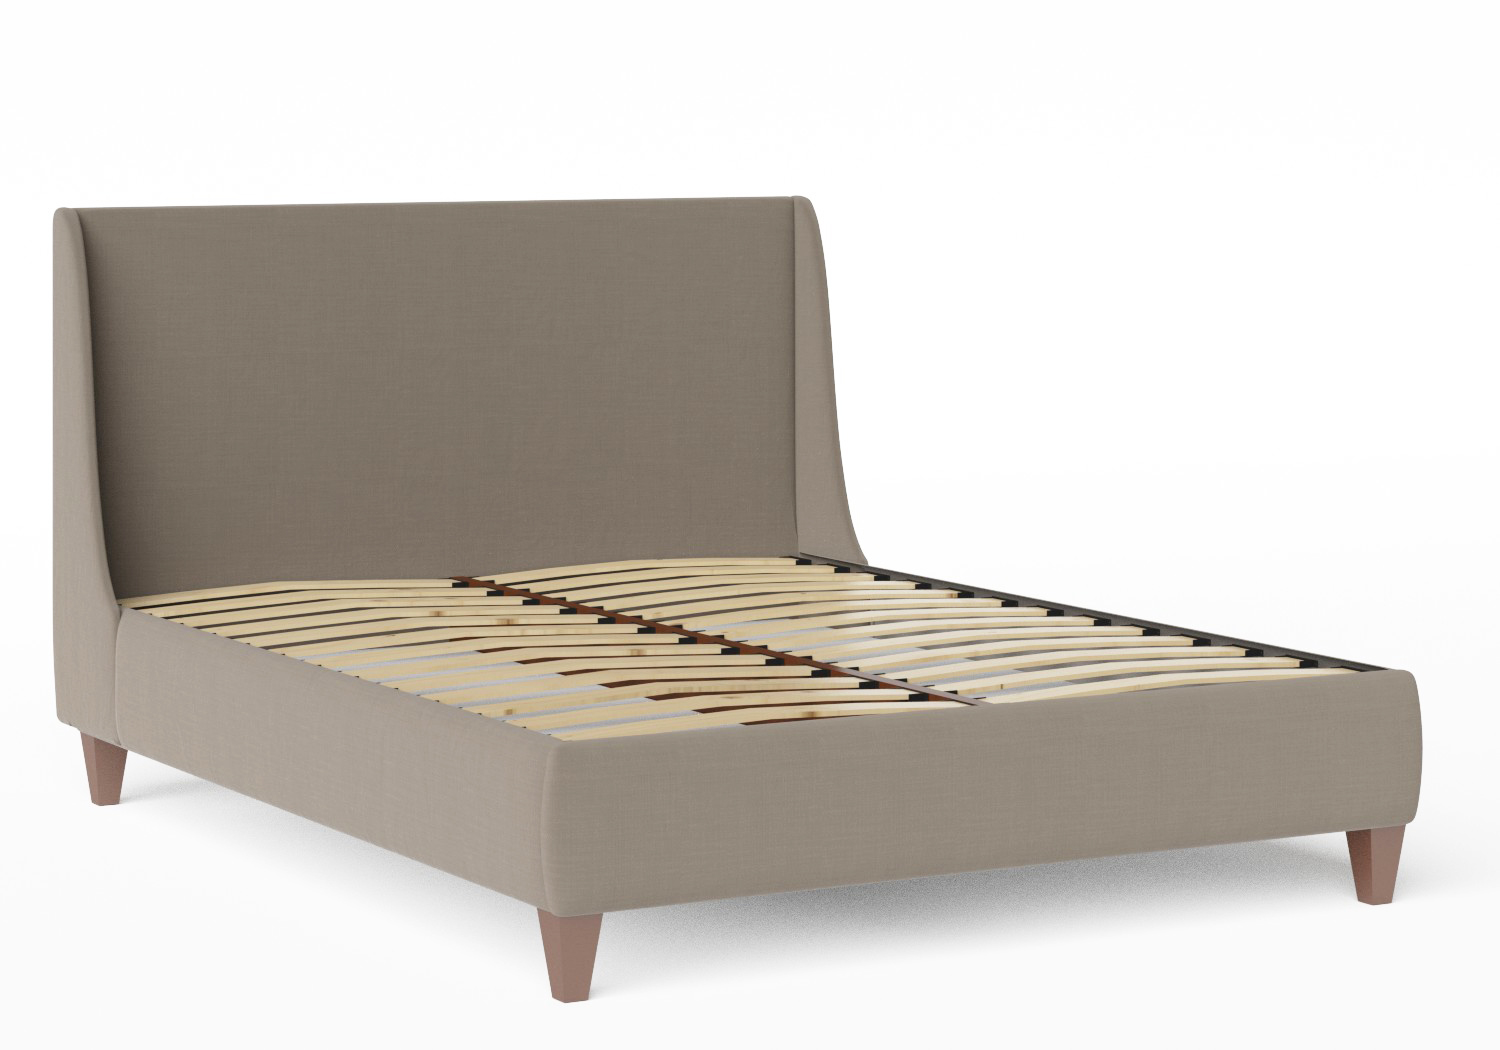 Sunderland Upholstered bed in Grey fabric  shown with slatted frame